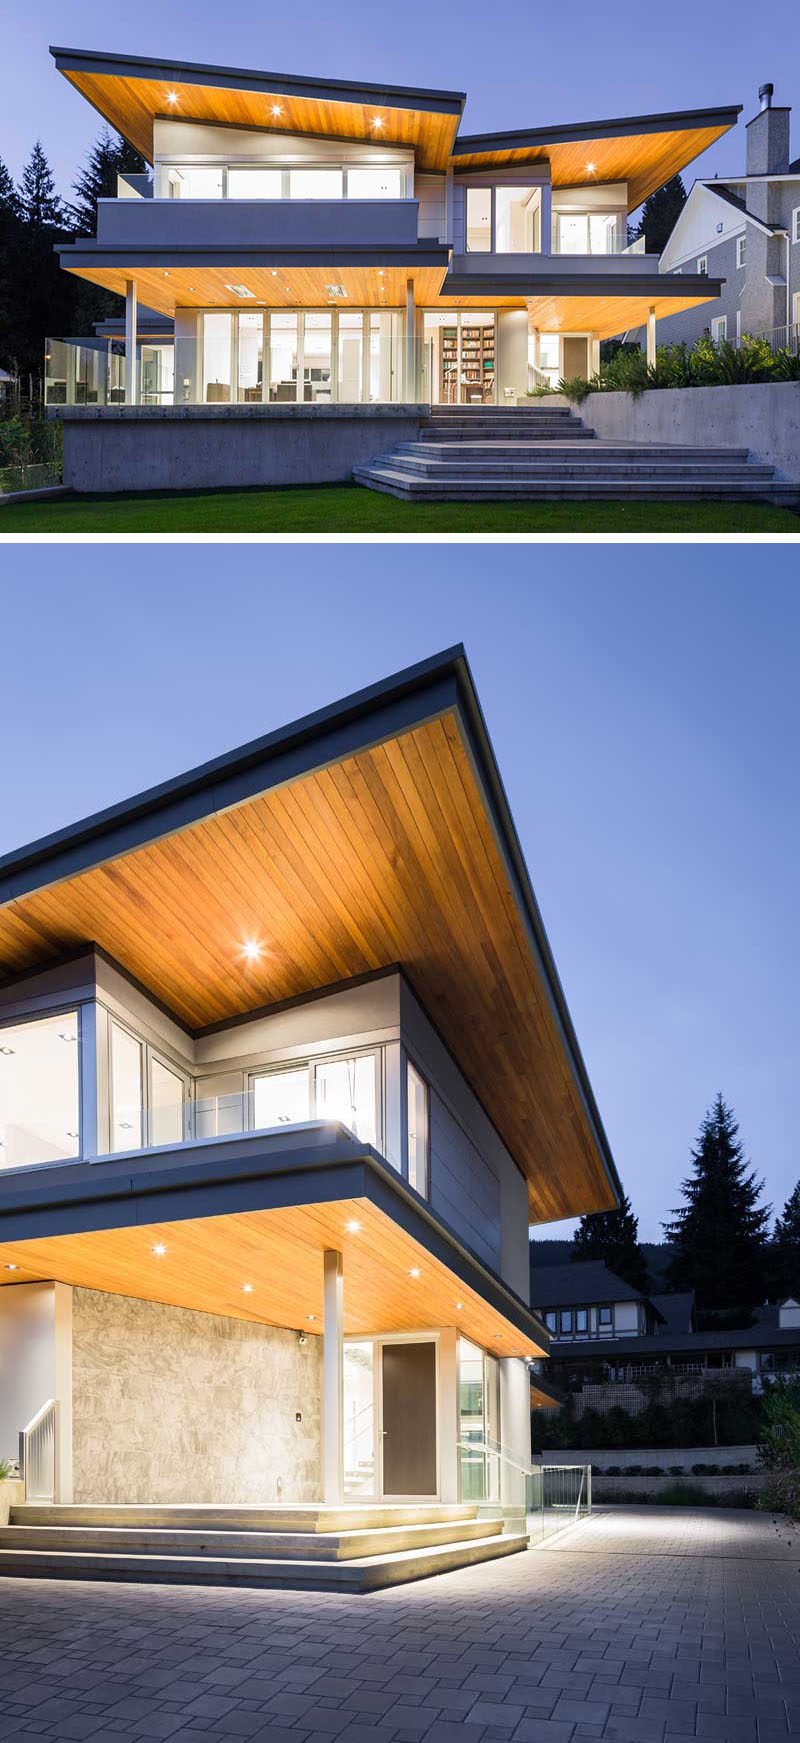 10 Modern Houses With Rock Climbing Walls: 20 Awesome Examples Of Pacific Northwest Architecture